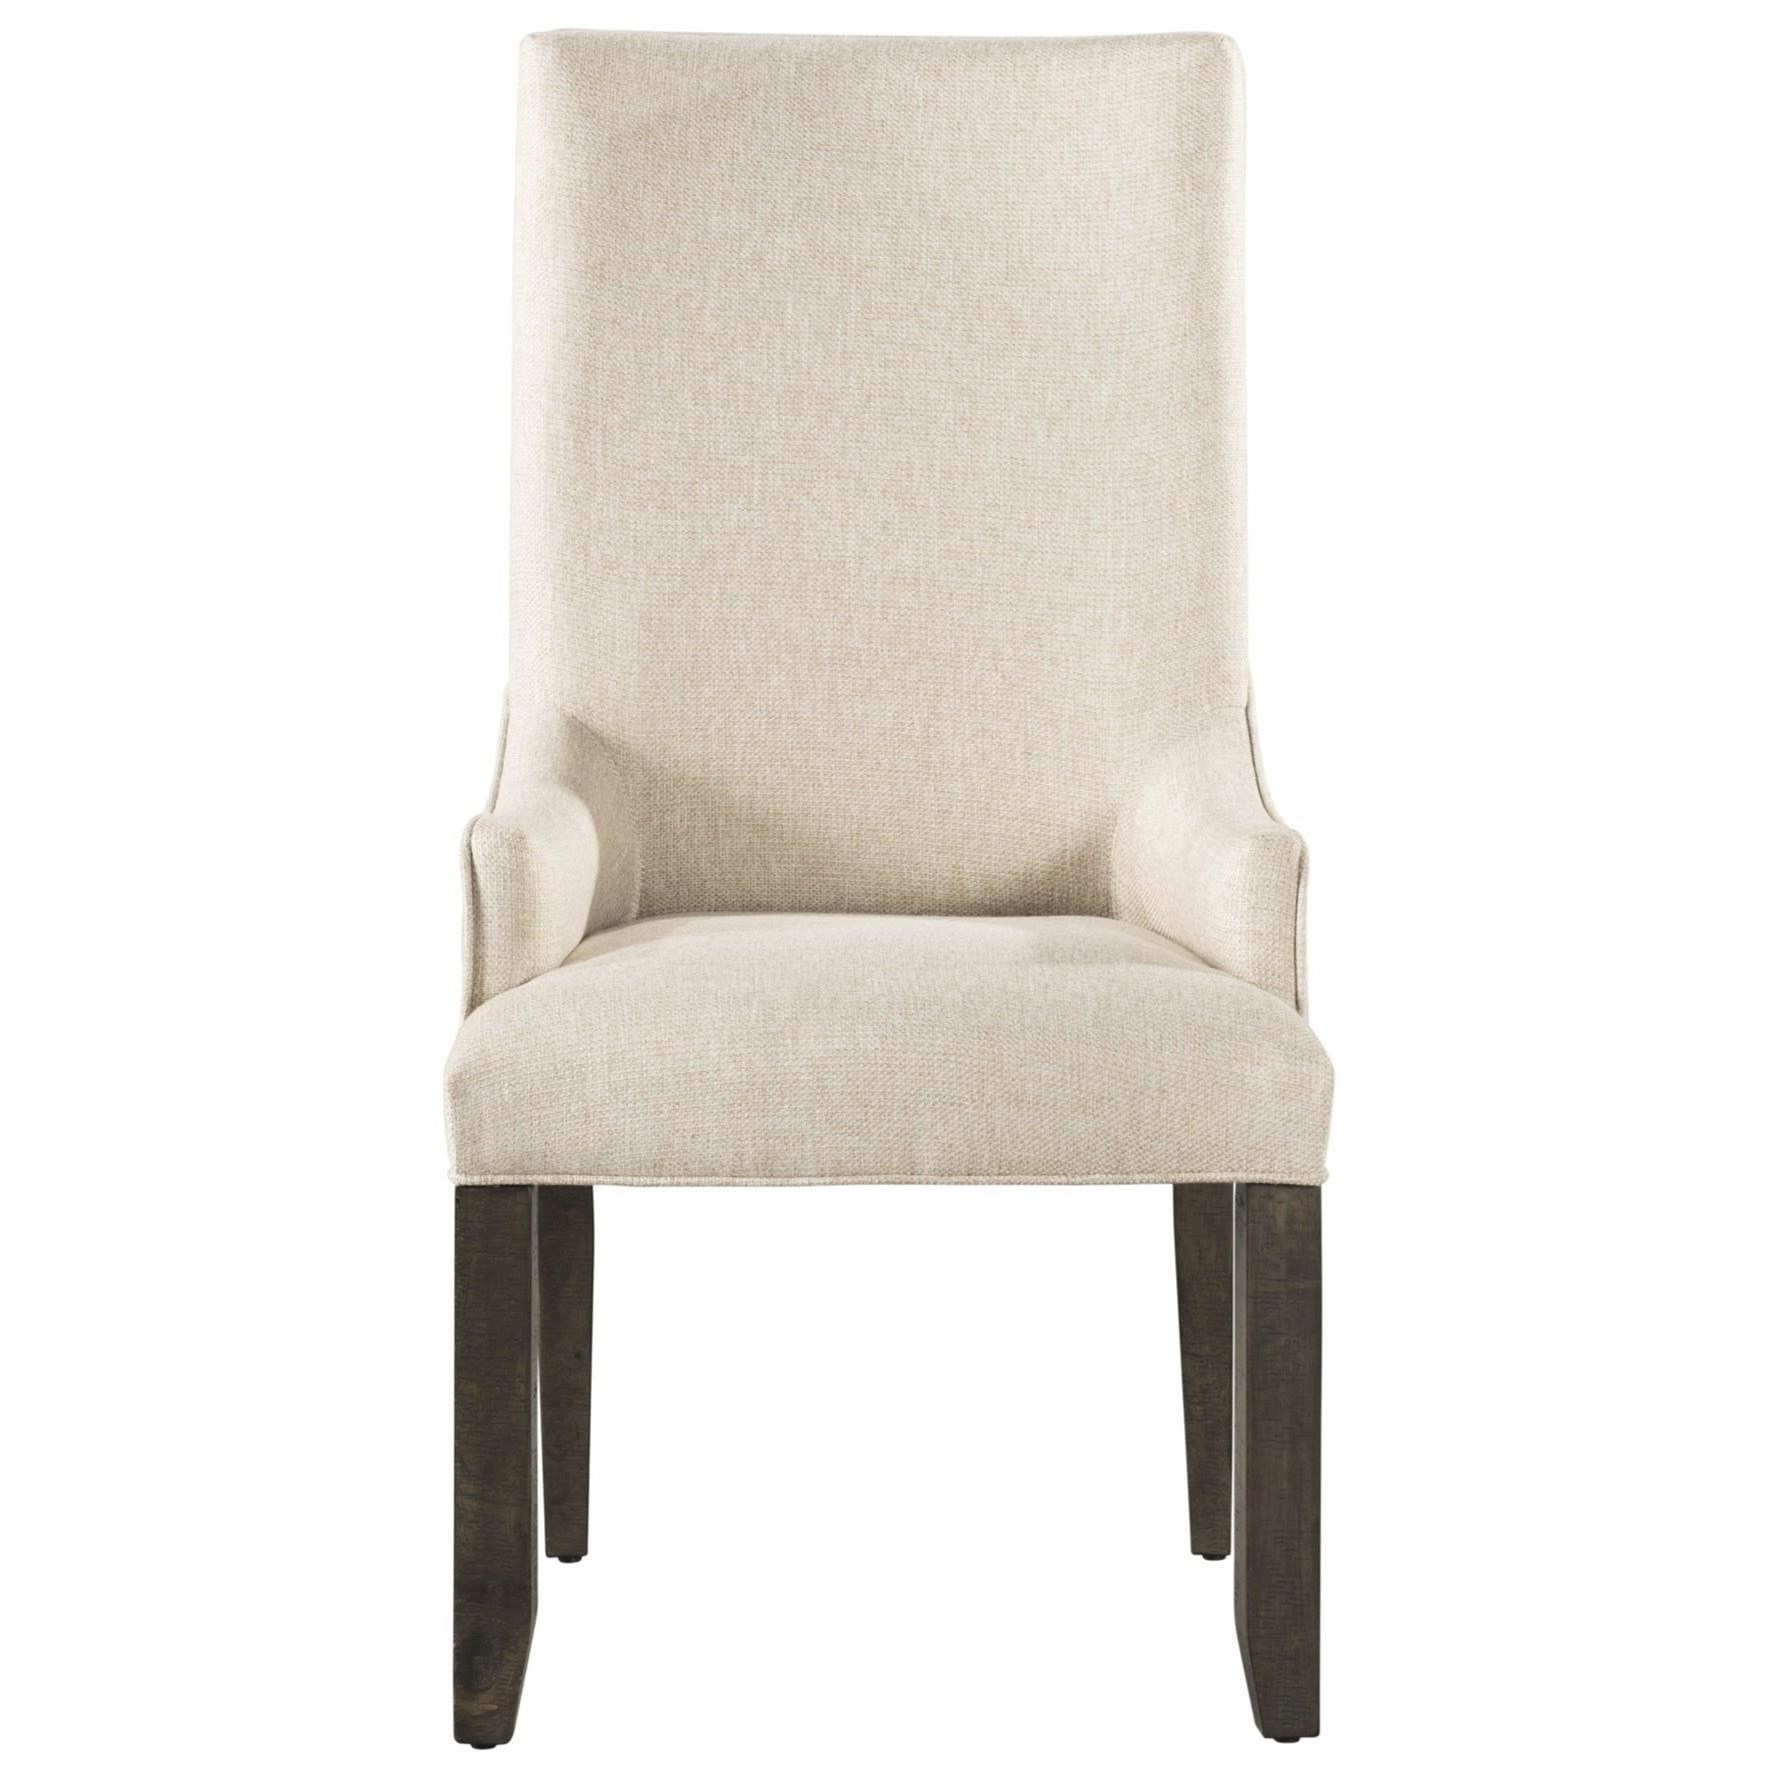 Stone Parson Arm Chair by Elements International at Powell's Furniture and Mattress